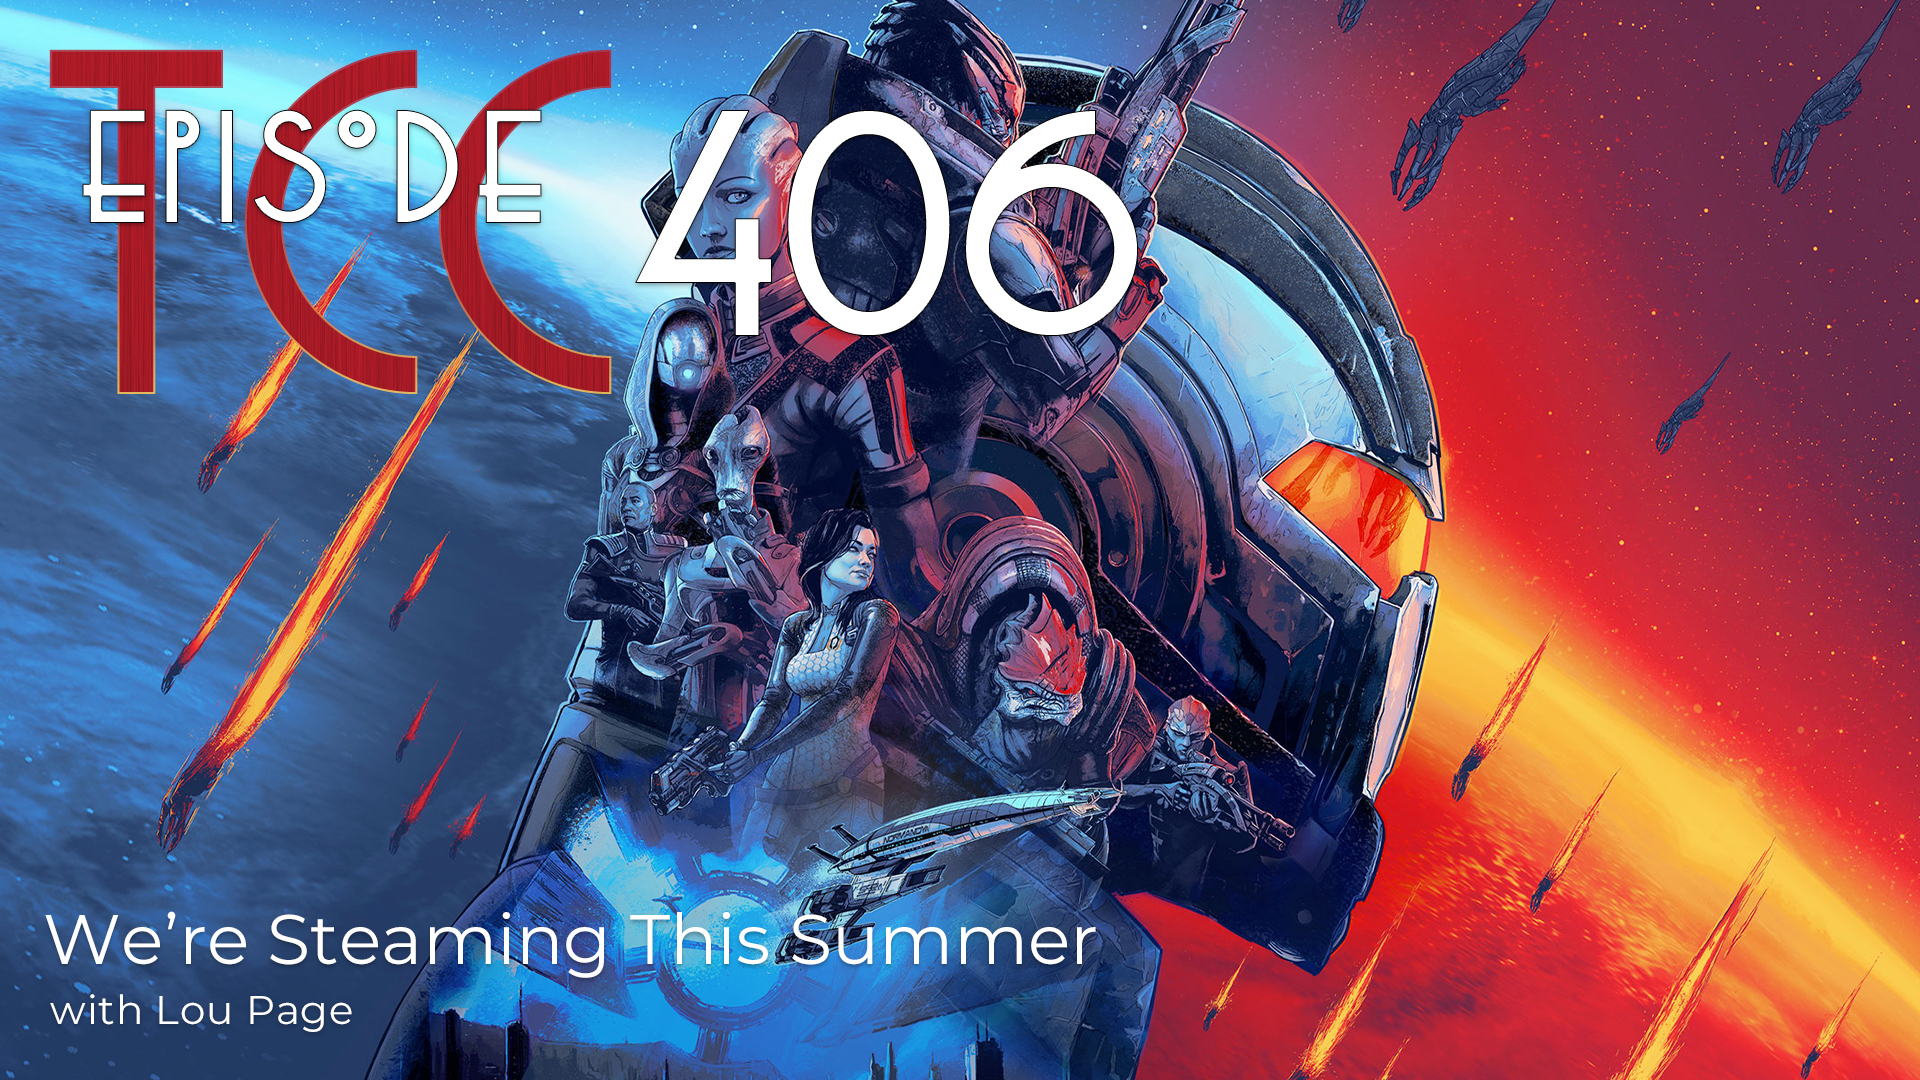 The Citadel Cafe 406: We're Steaming This Summer